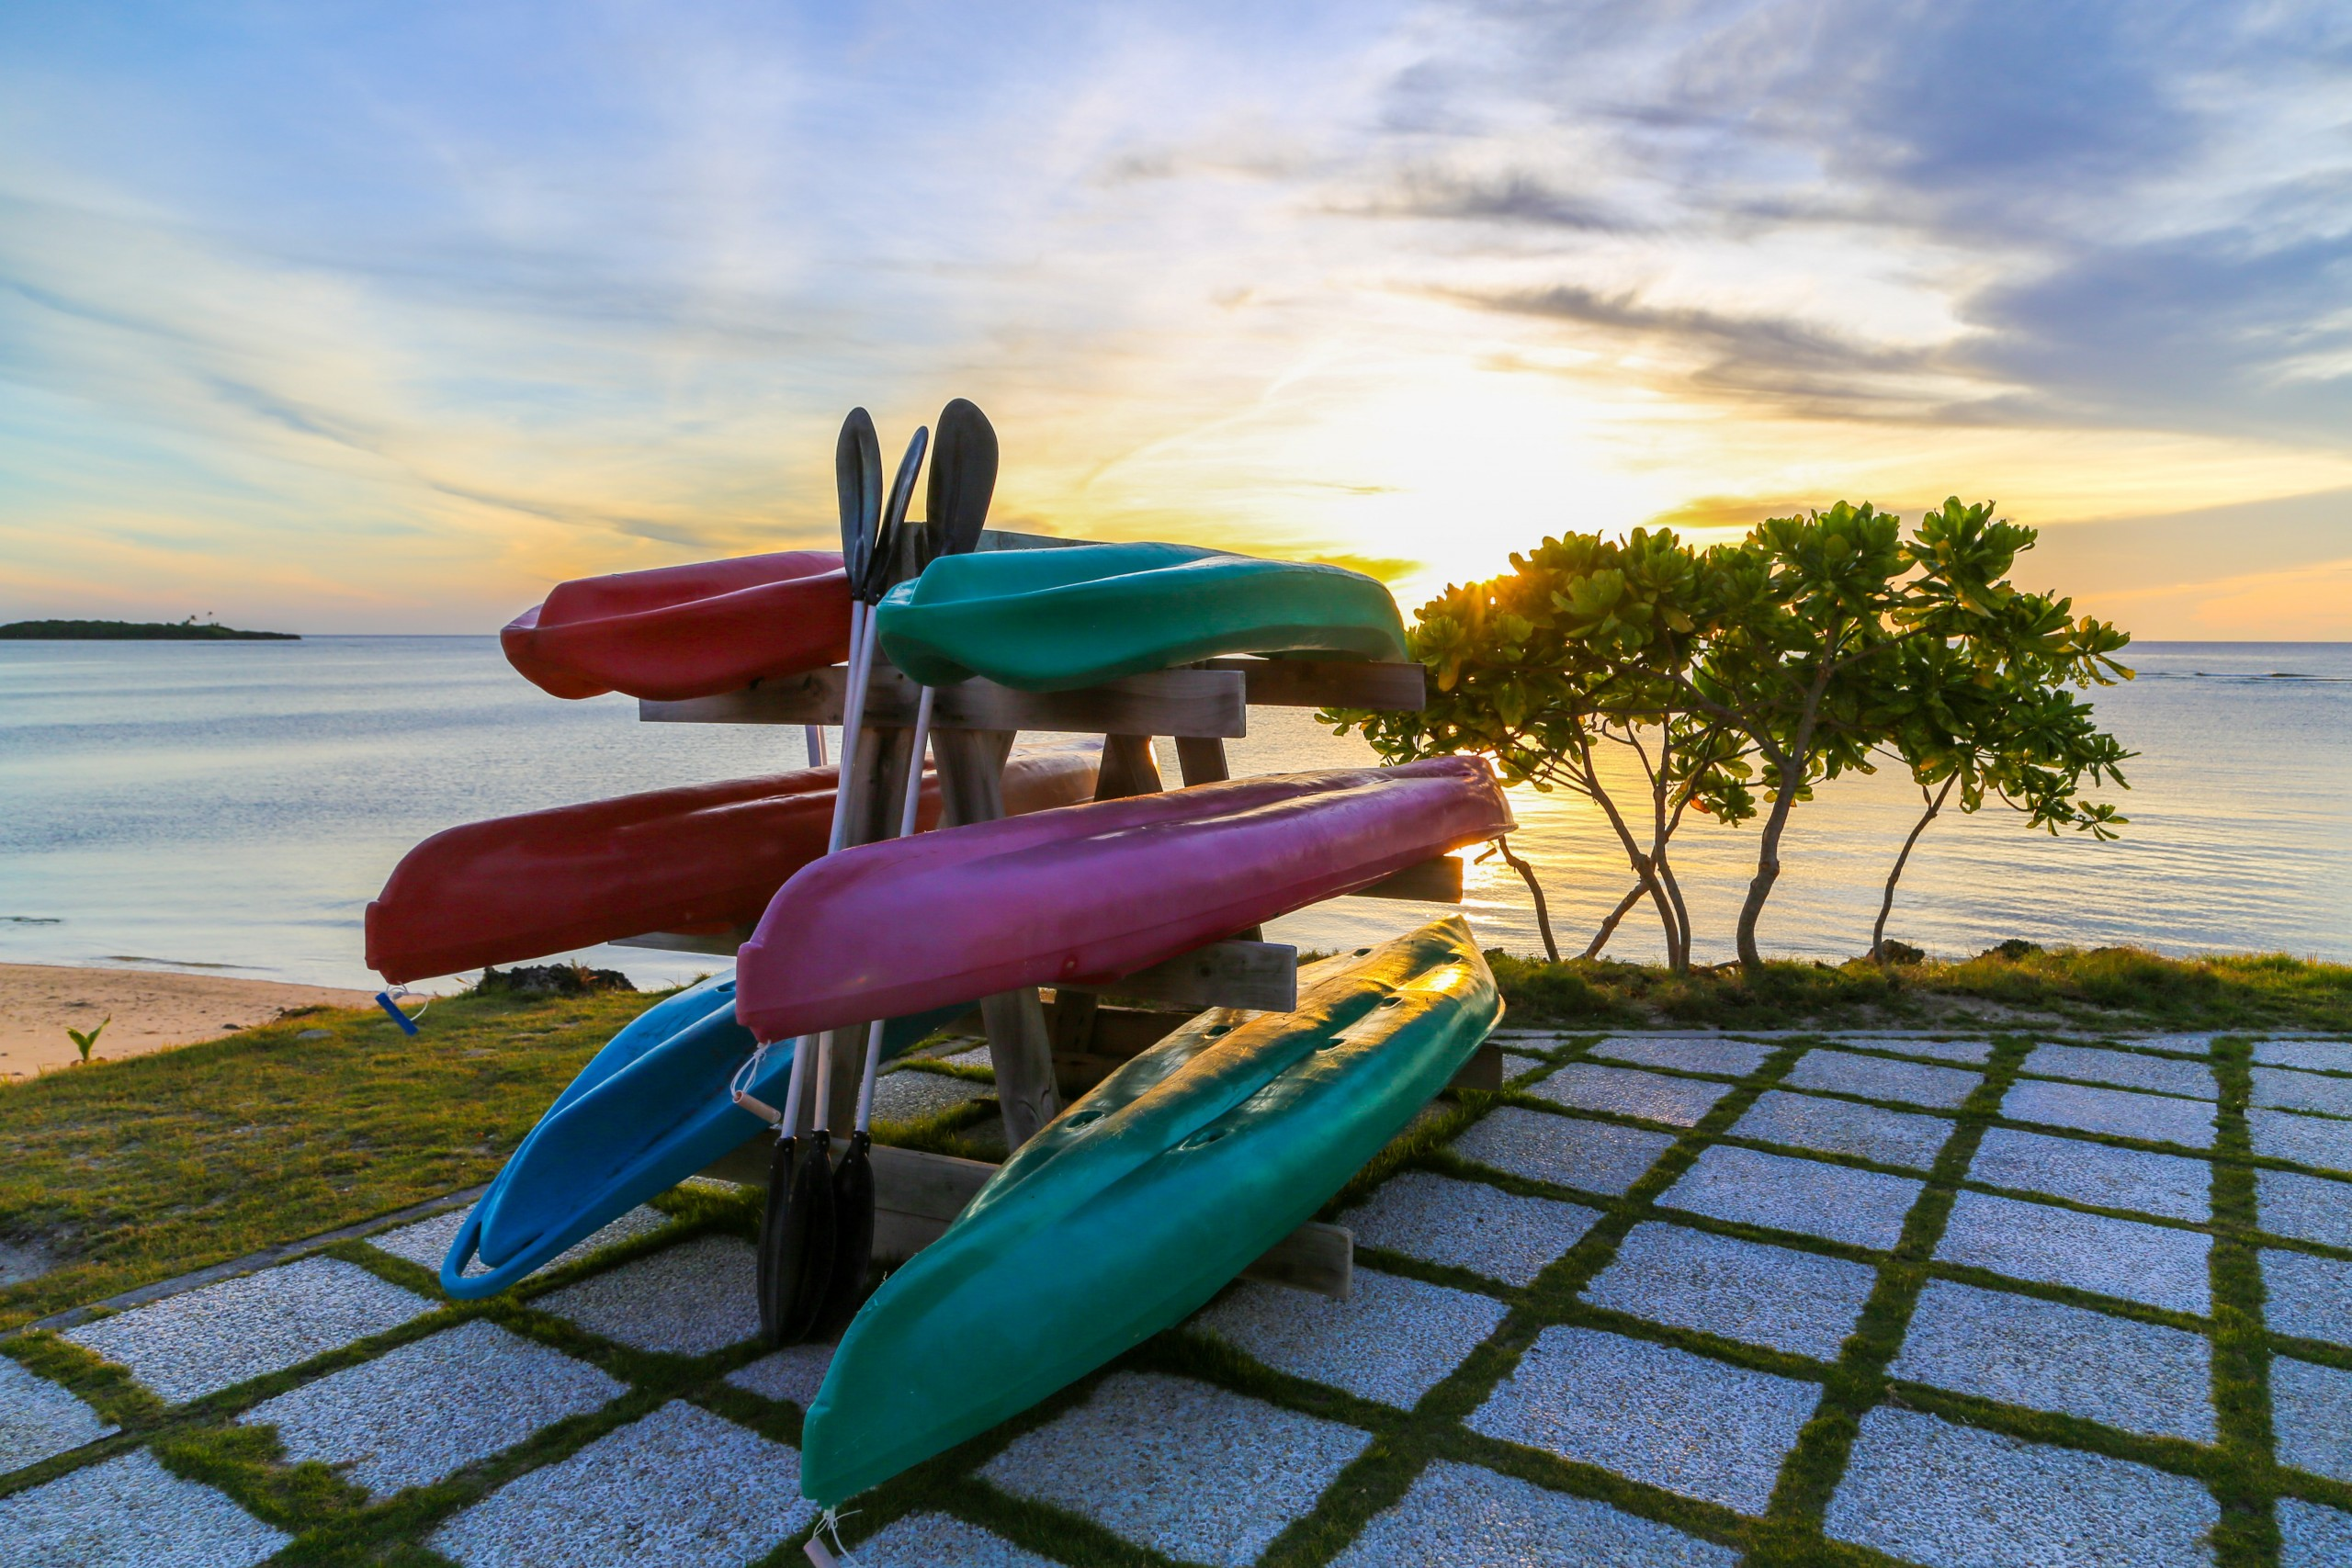 Colorful kayaks on rack with sunset in background.